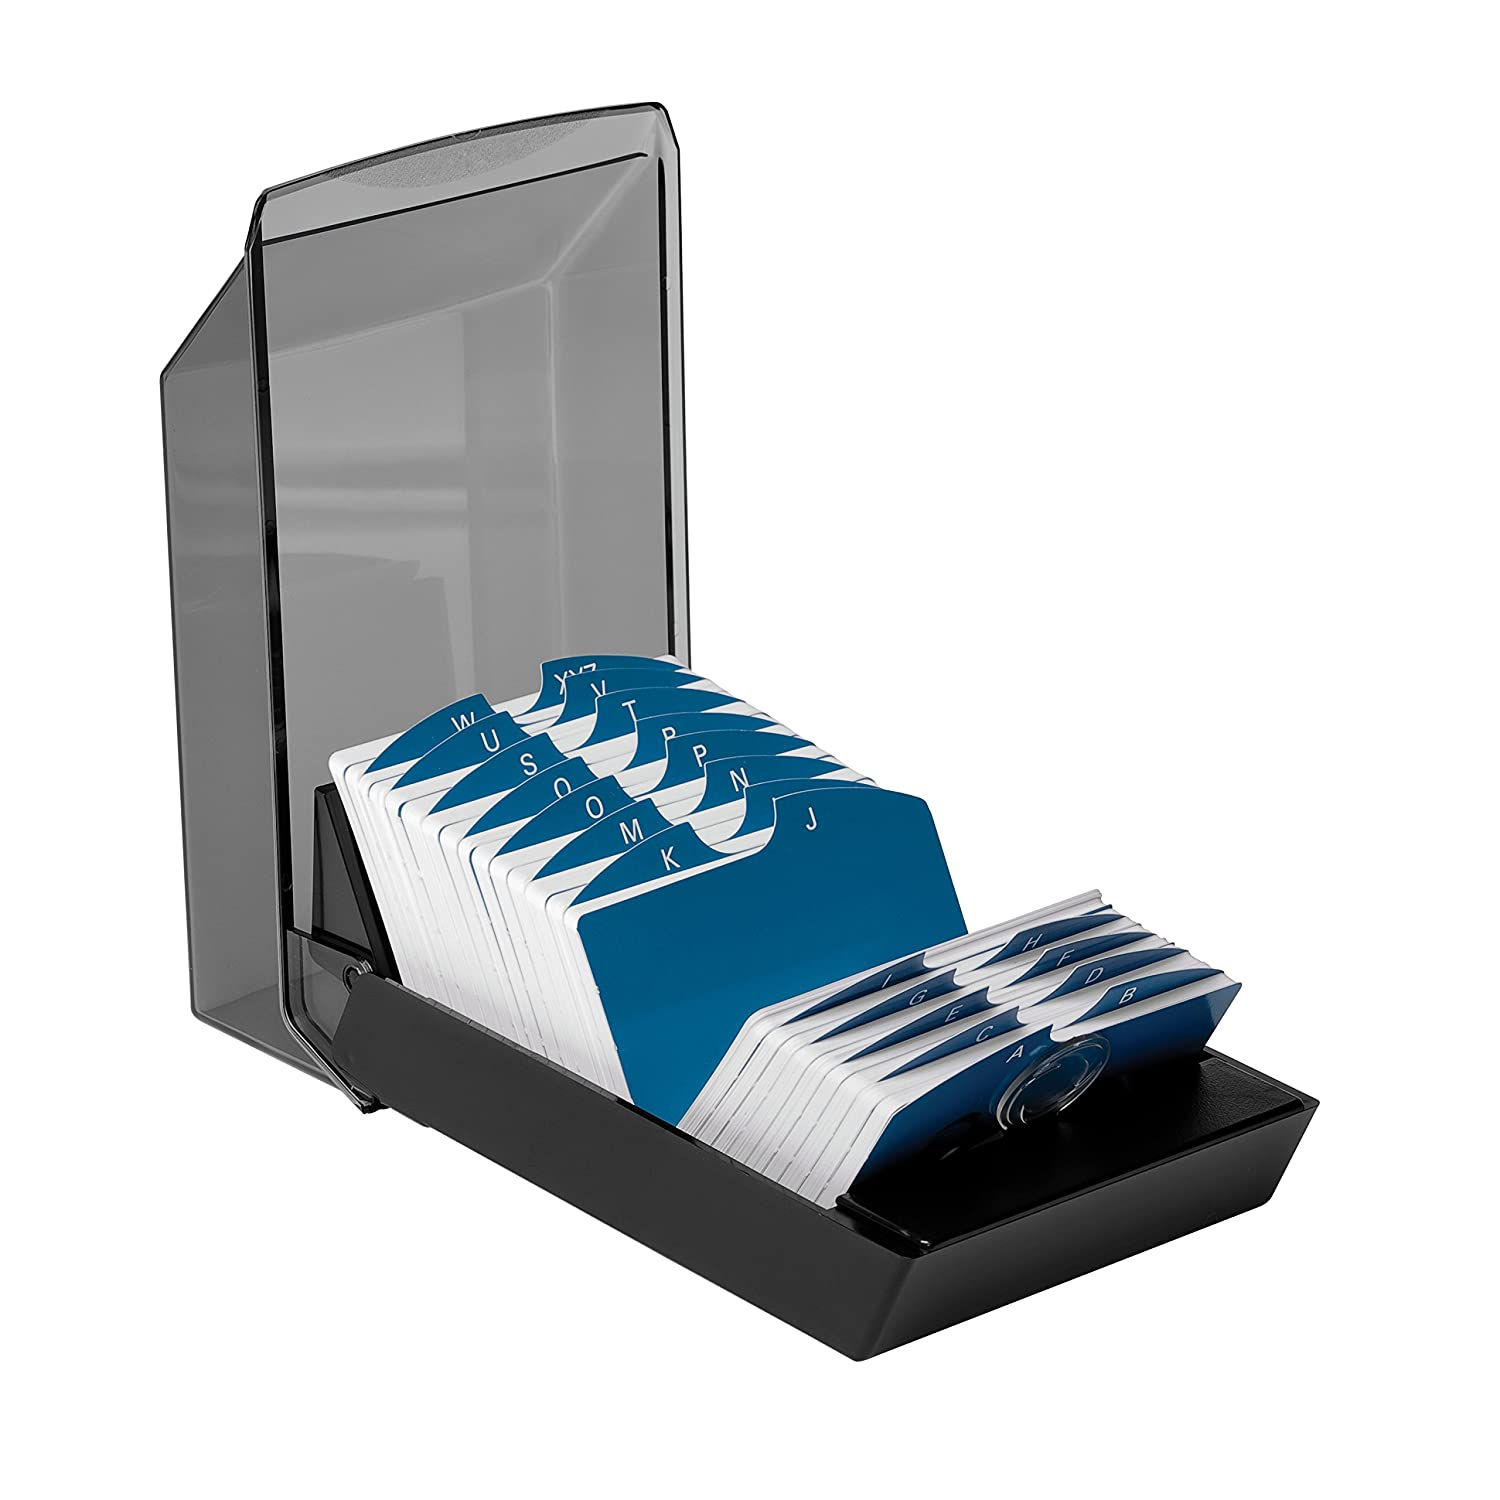 Rolodex Rolodex Covered Business Card File 500 2 1